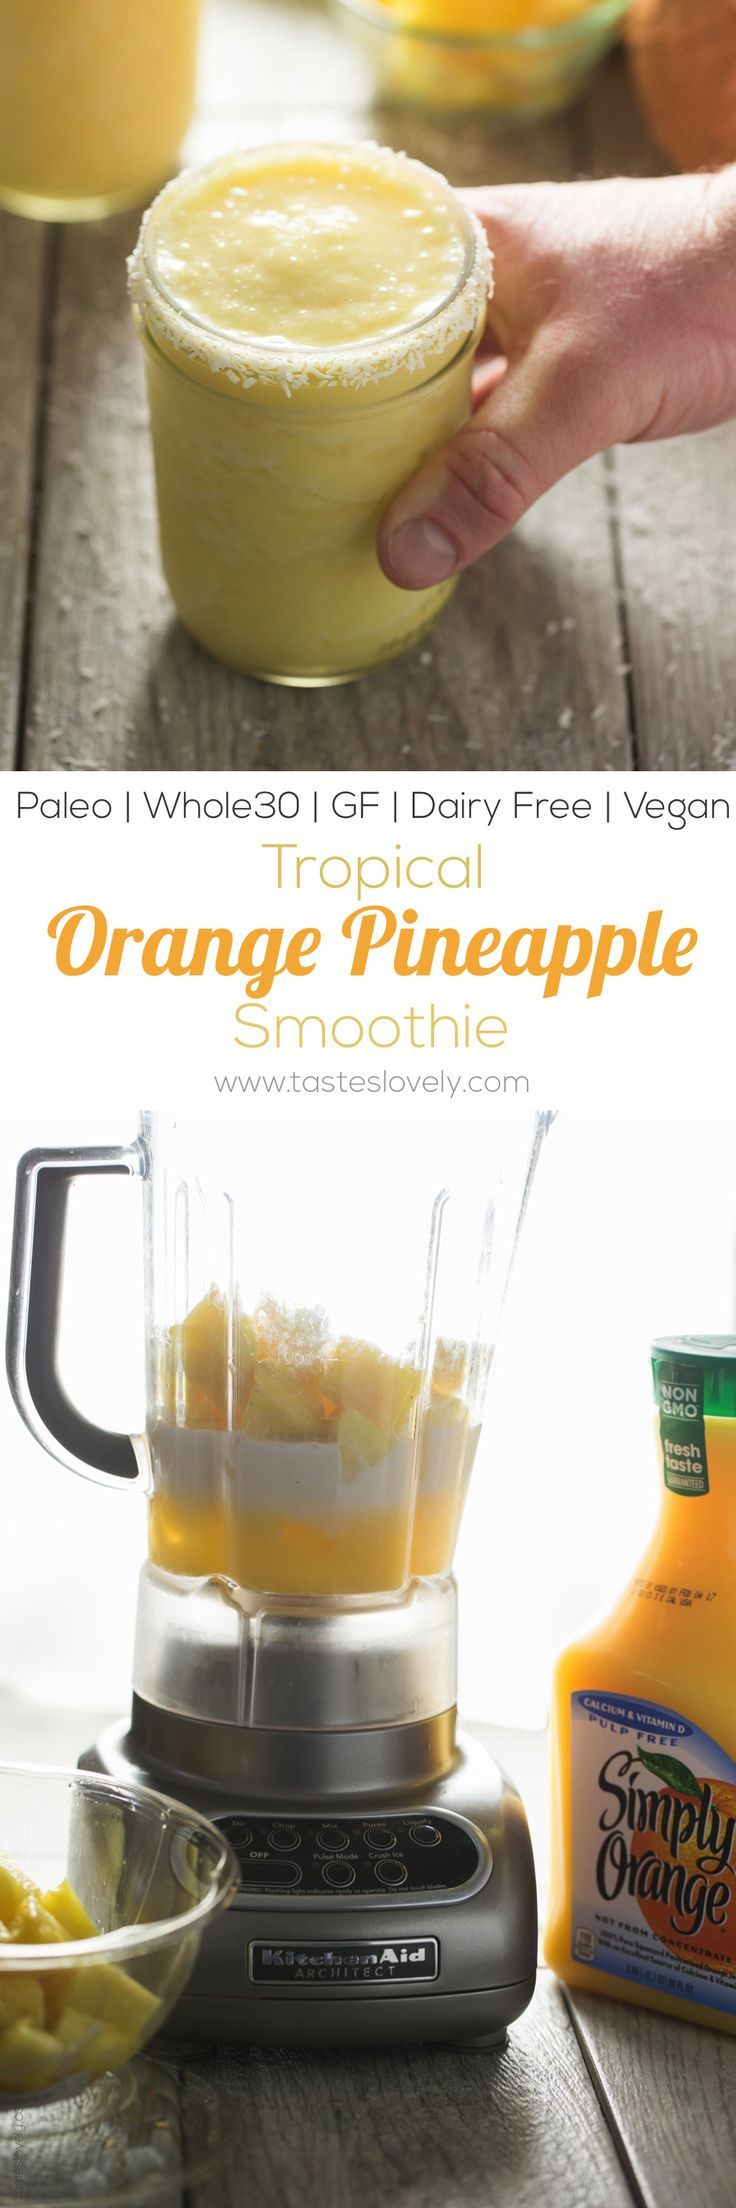 Tropical Pineapple Orange Smoothie - citrusy and bright breakfast smoothie (paleo, gluten free, dairy free, Whole30, vegan)